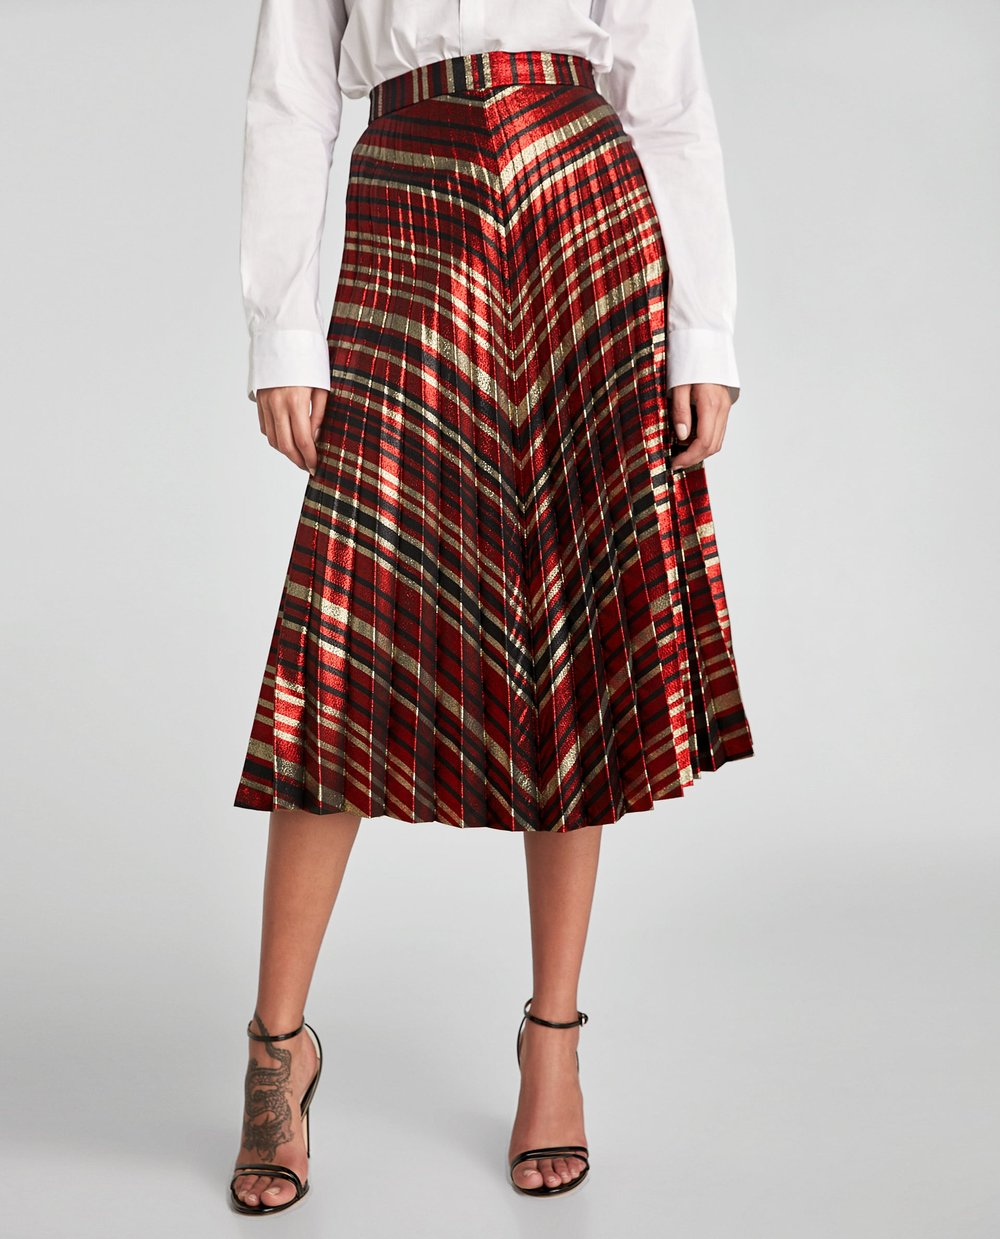 ZARA PLEATED STRIPED SKIRT   - $49.90 CAN